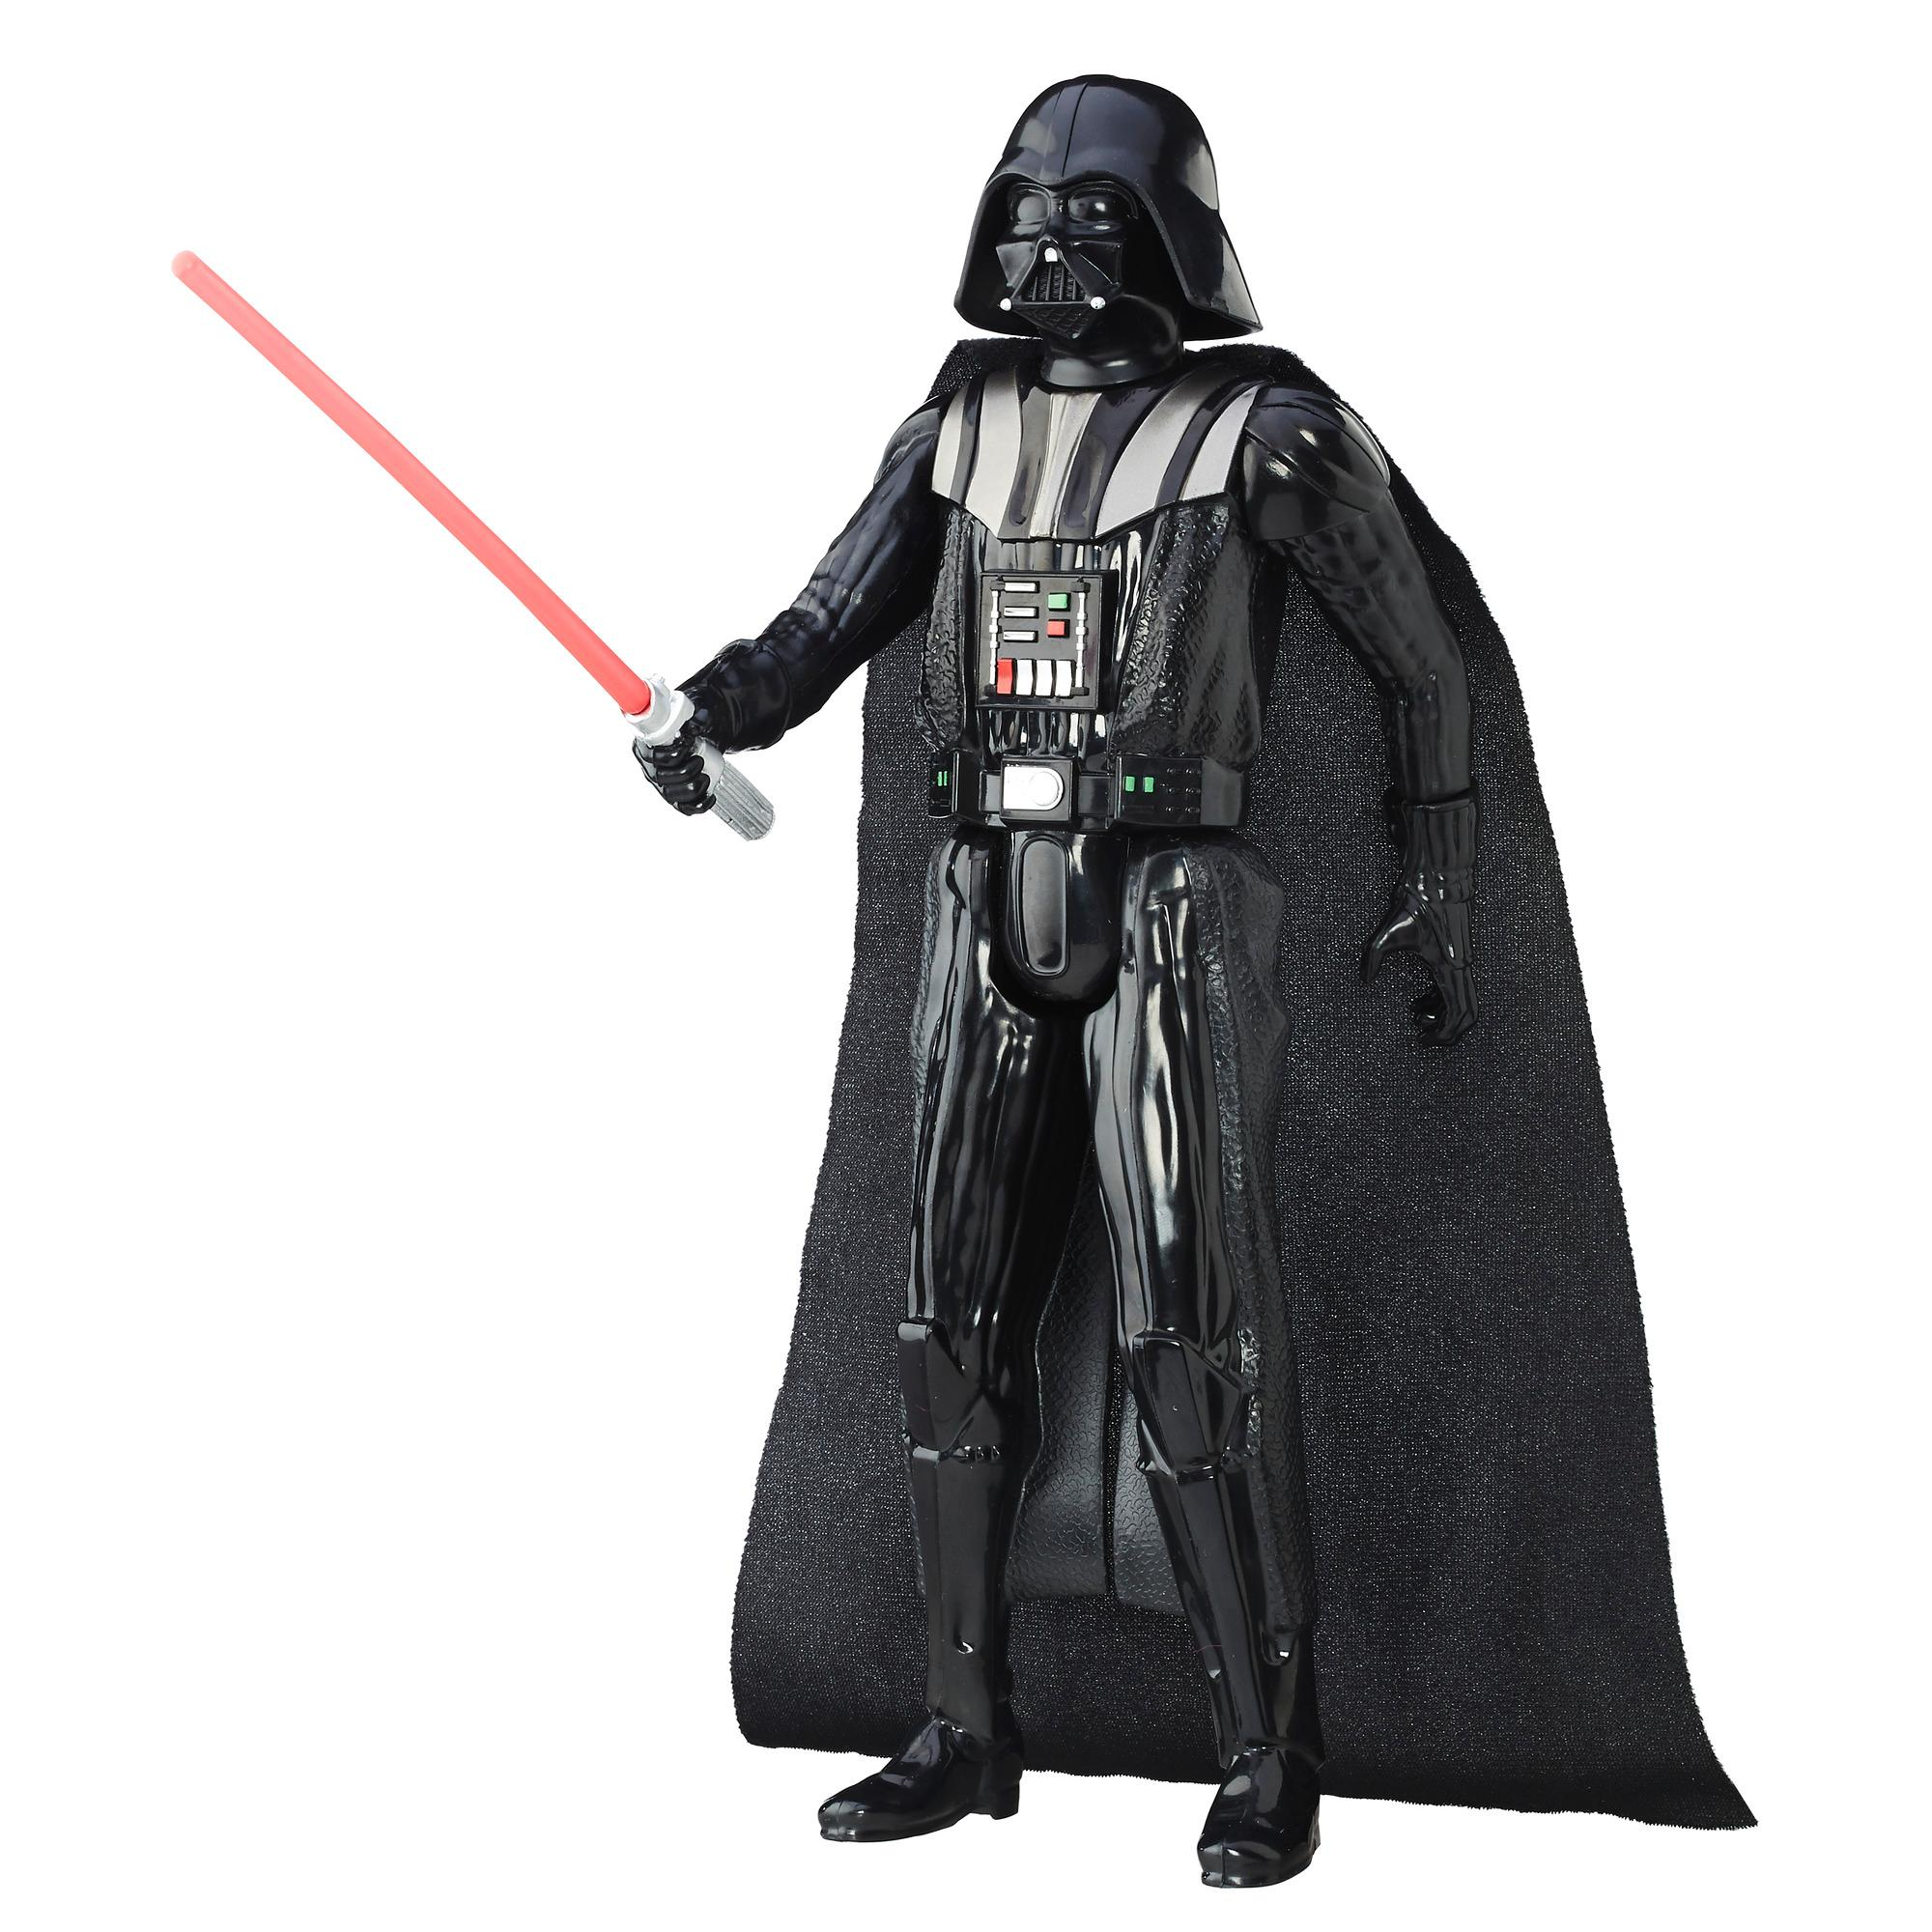 Star Wars Rogue One 12-Inch Darth Vader Figure